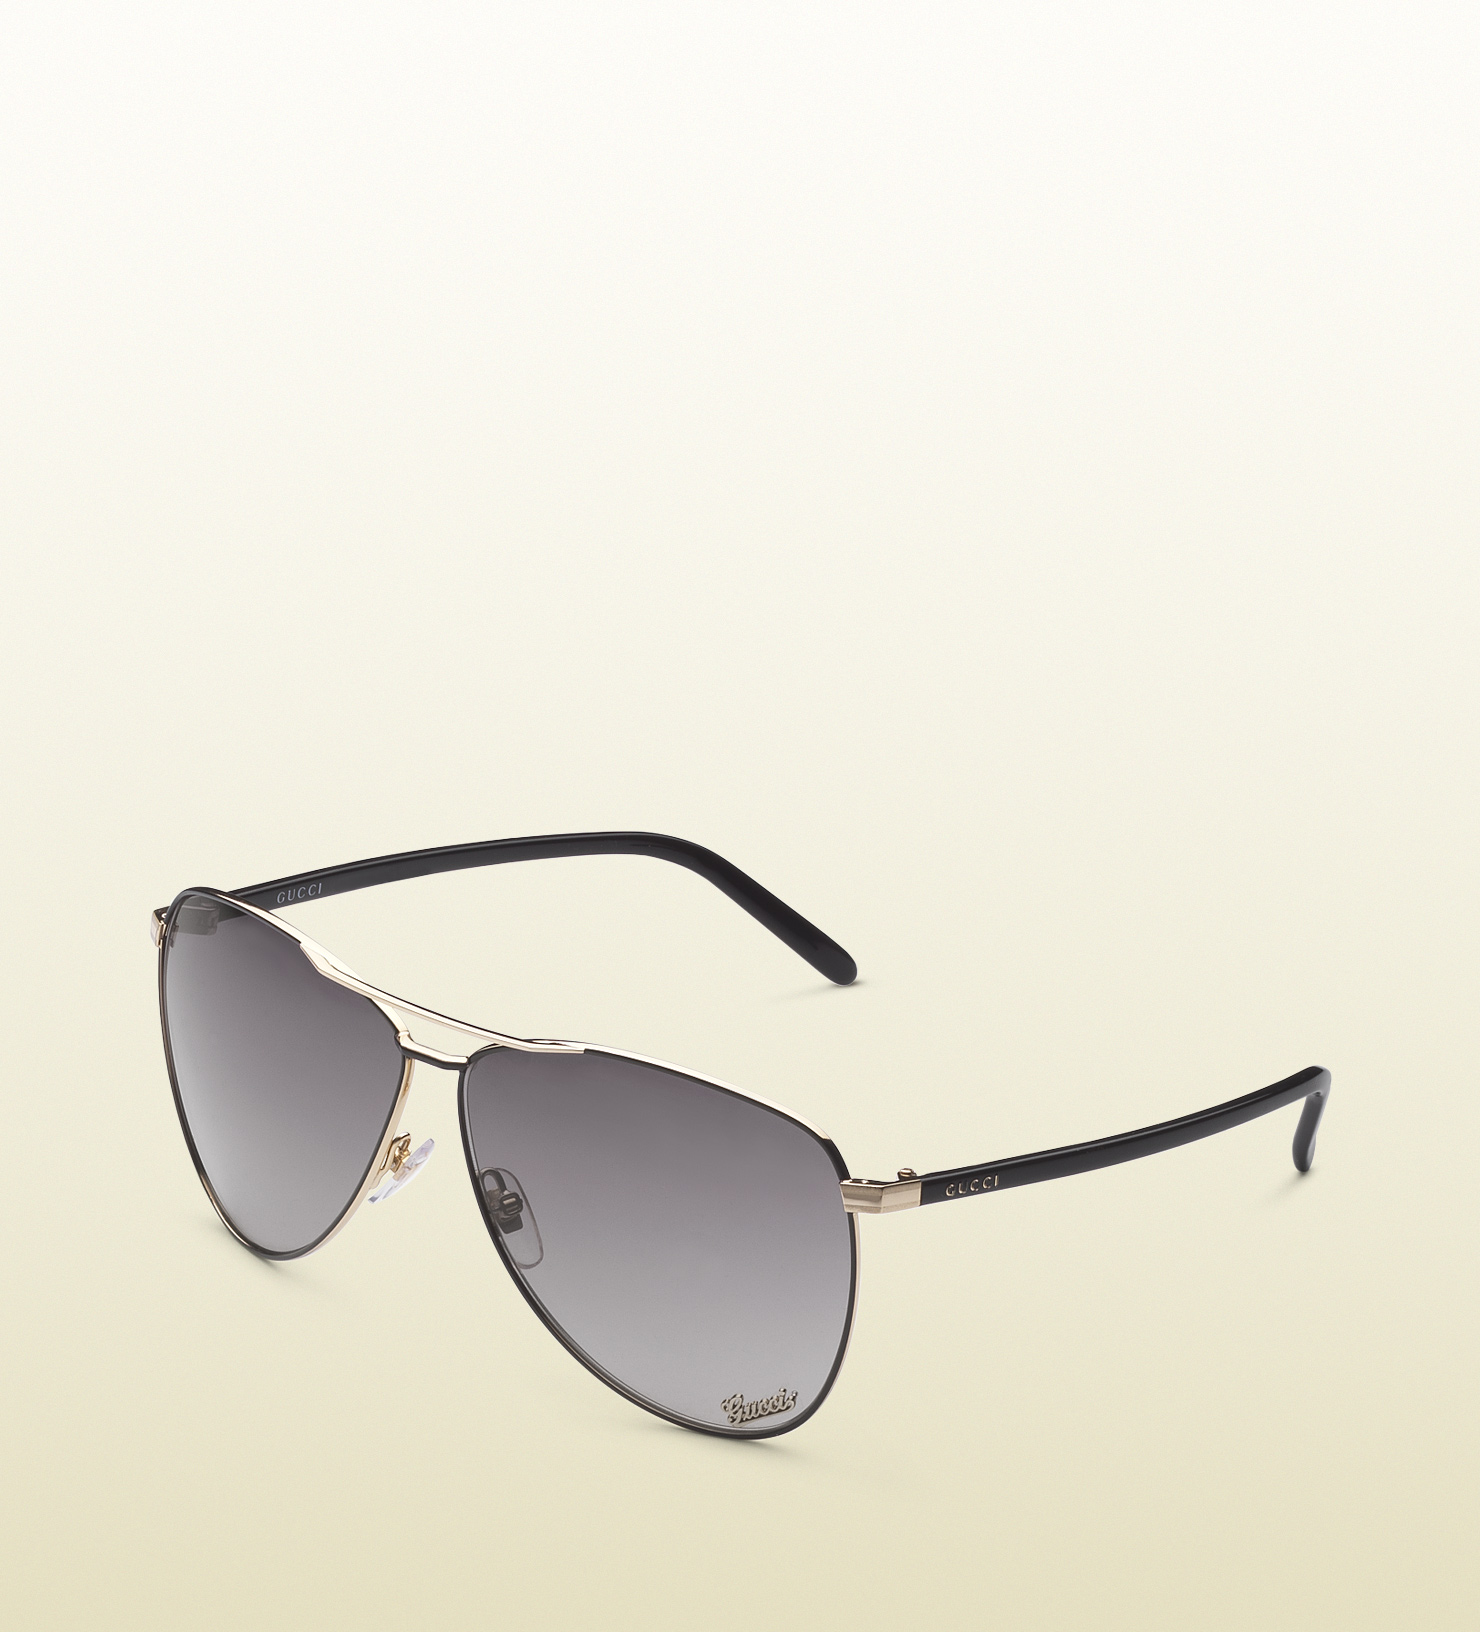 Gucci Sunglasses With Logo On Lens  gucci aviator sunglasses with gucci signature pad on lens and